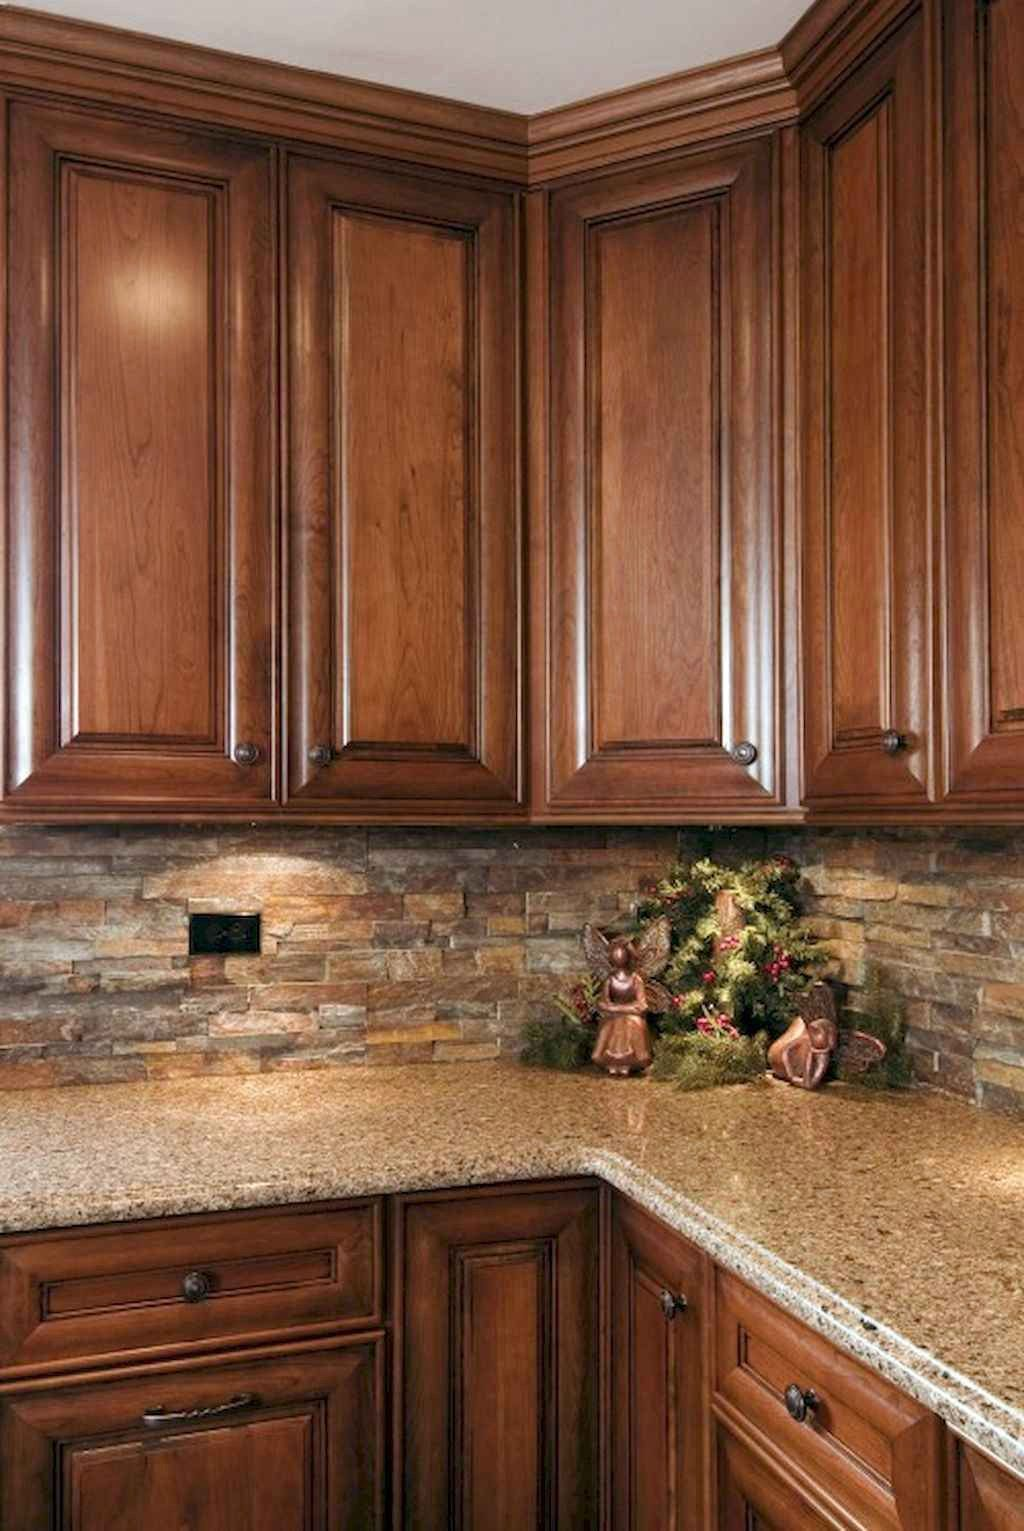 79 Stunning Kitchen Backsplash Decorating Ideas And Remodel In 2020 Stone Kitchen Design Kitchen Renovation Kitchen Design Open